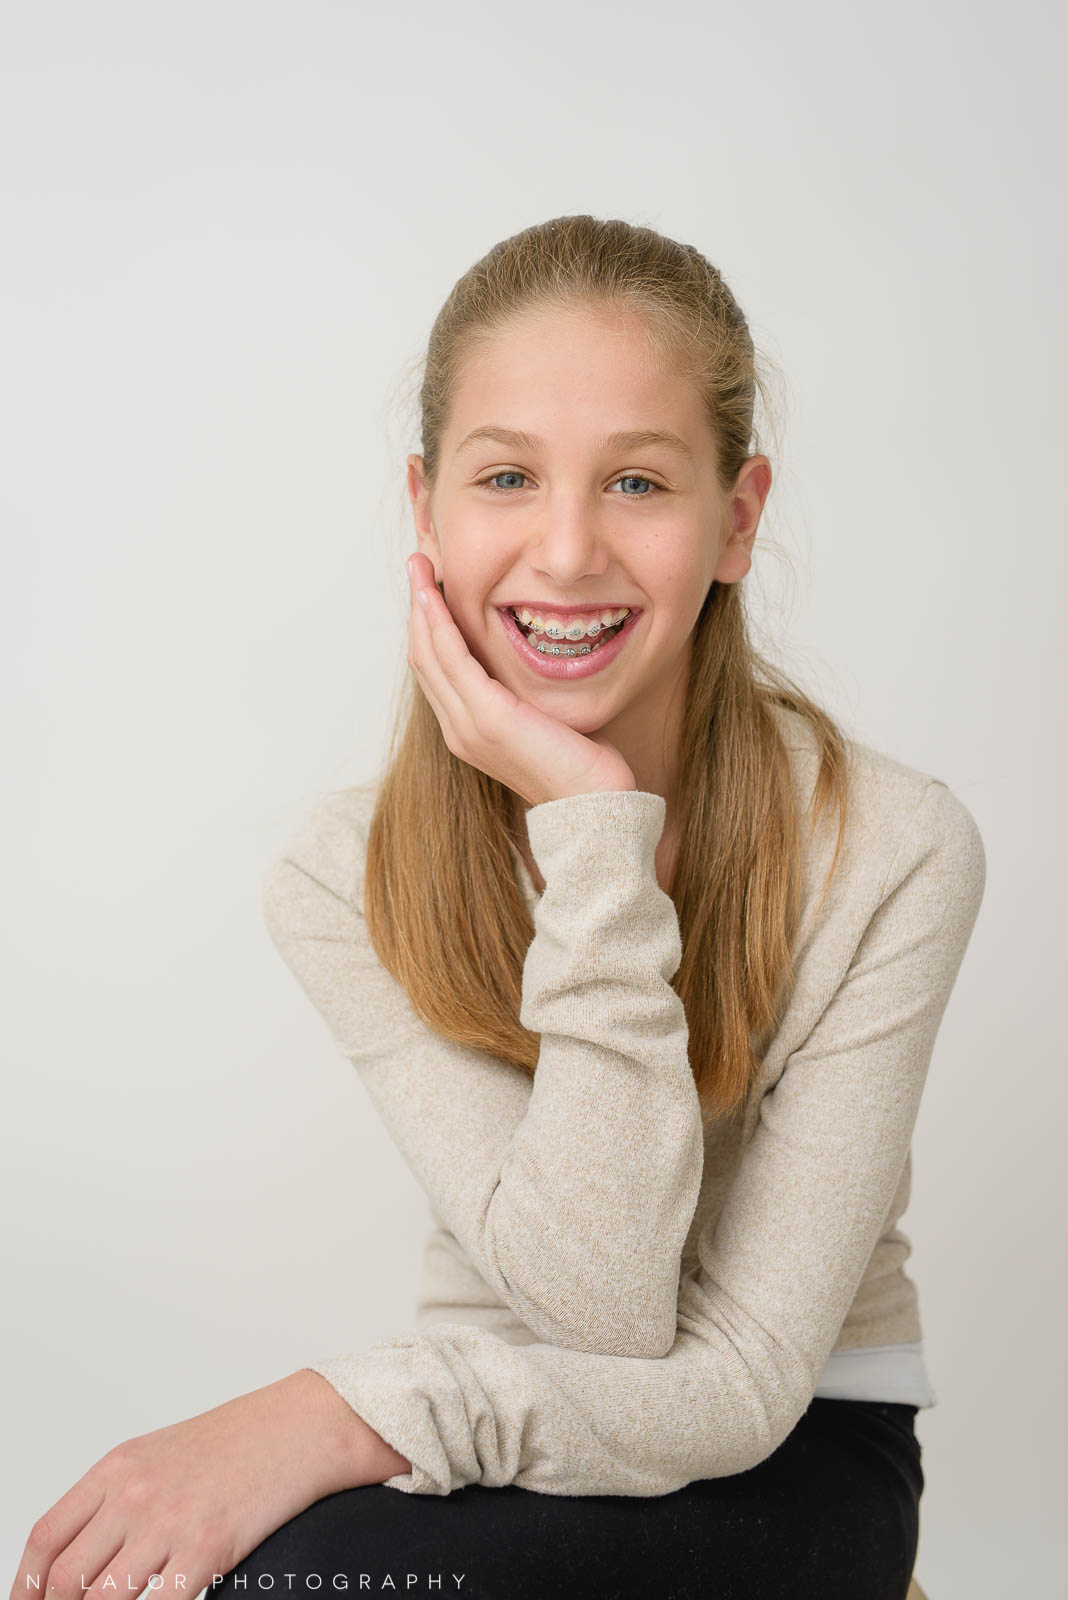 Photo of young girl smiling with braces. N. Lalor Photography, Greenwich, Connecticut.